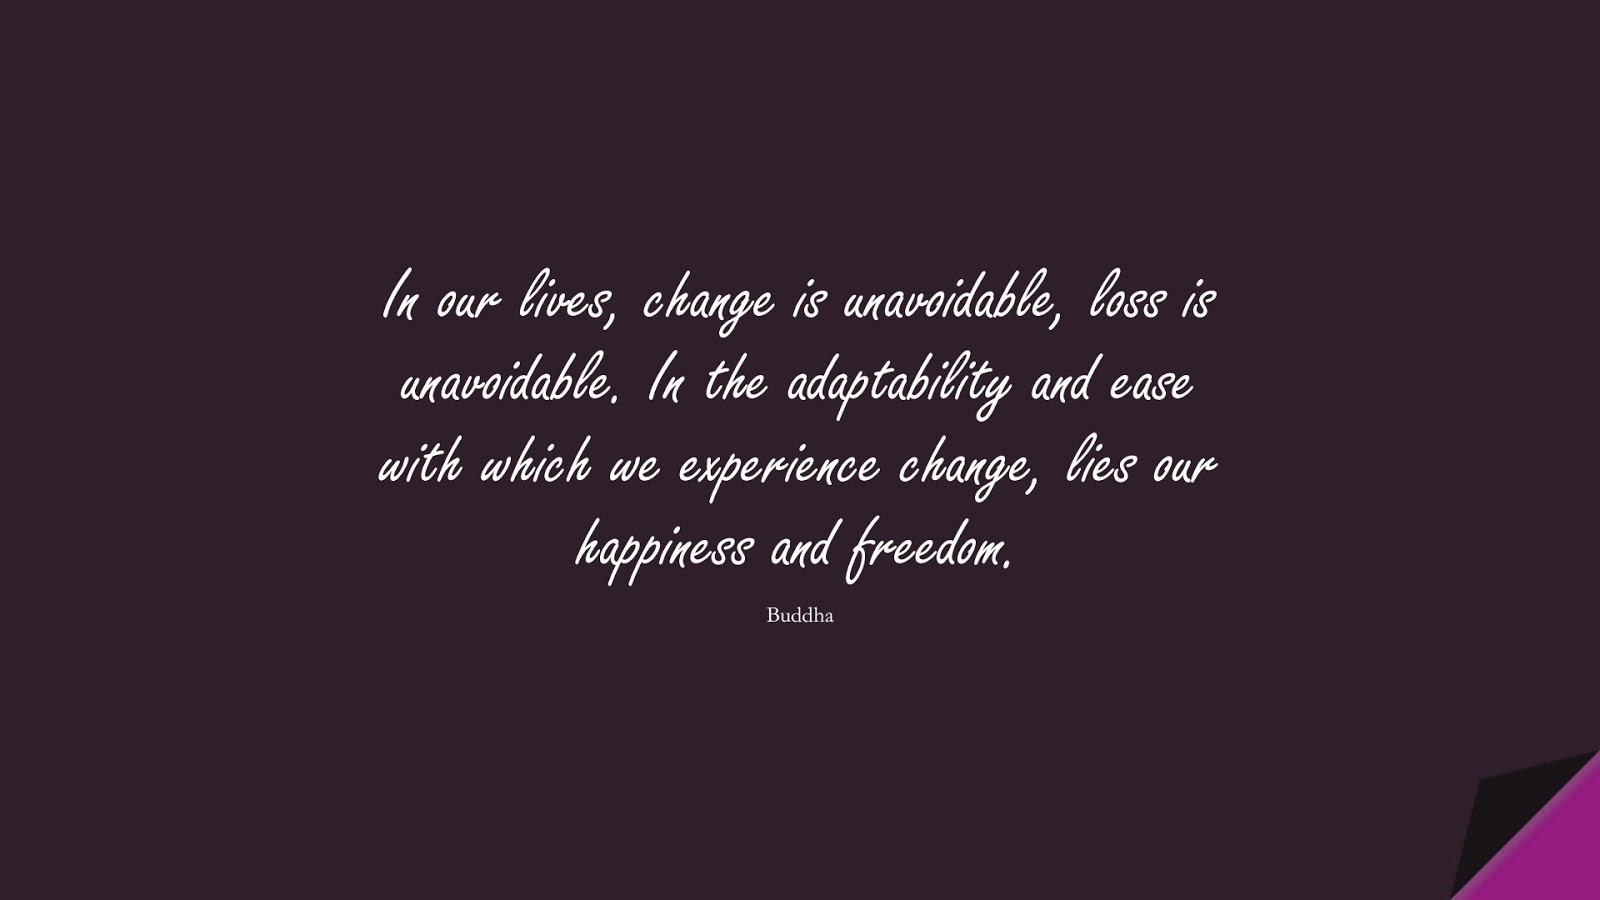 In our lives, change is unavoidable, loss is unavoidable. In the adaptability and ease with which we experience change, lies our happiness and freedom. (Buddha);  #HappinessQuotes